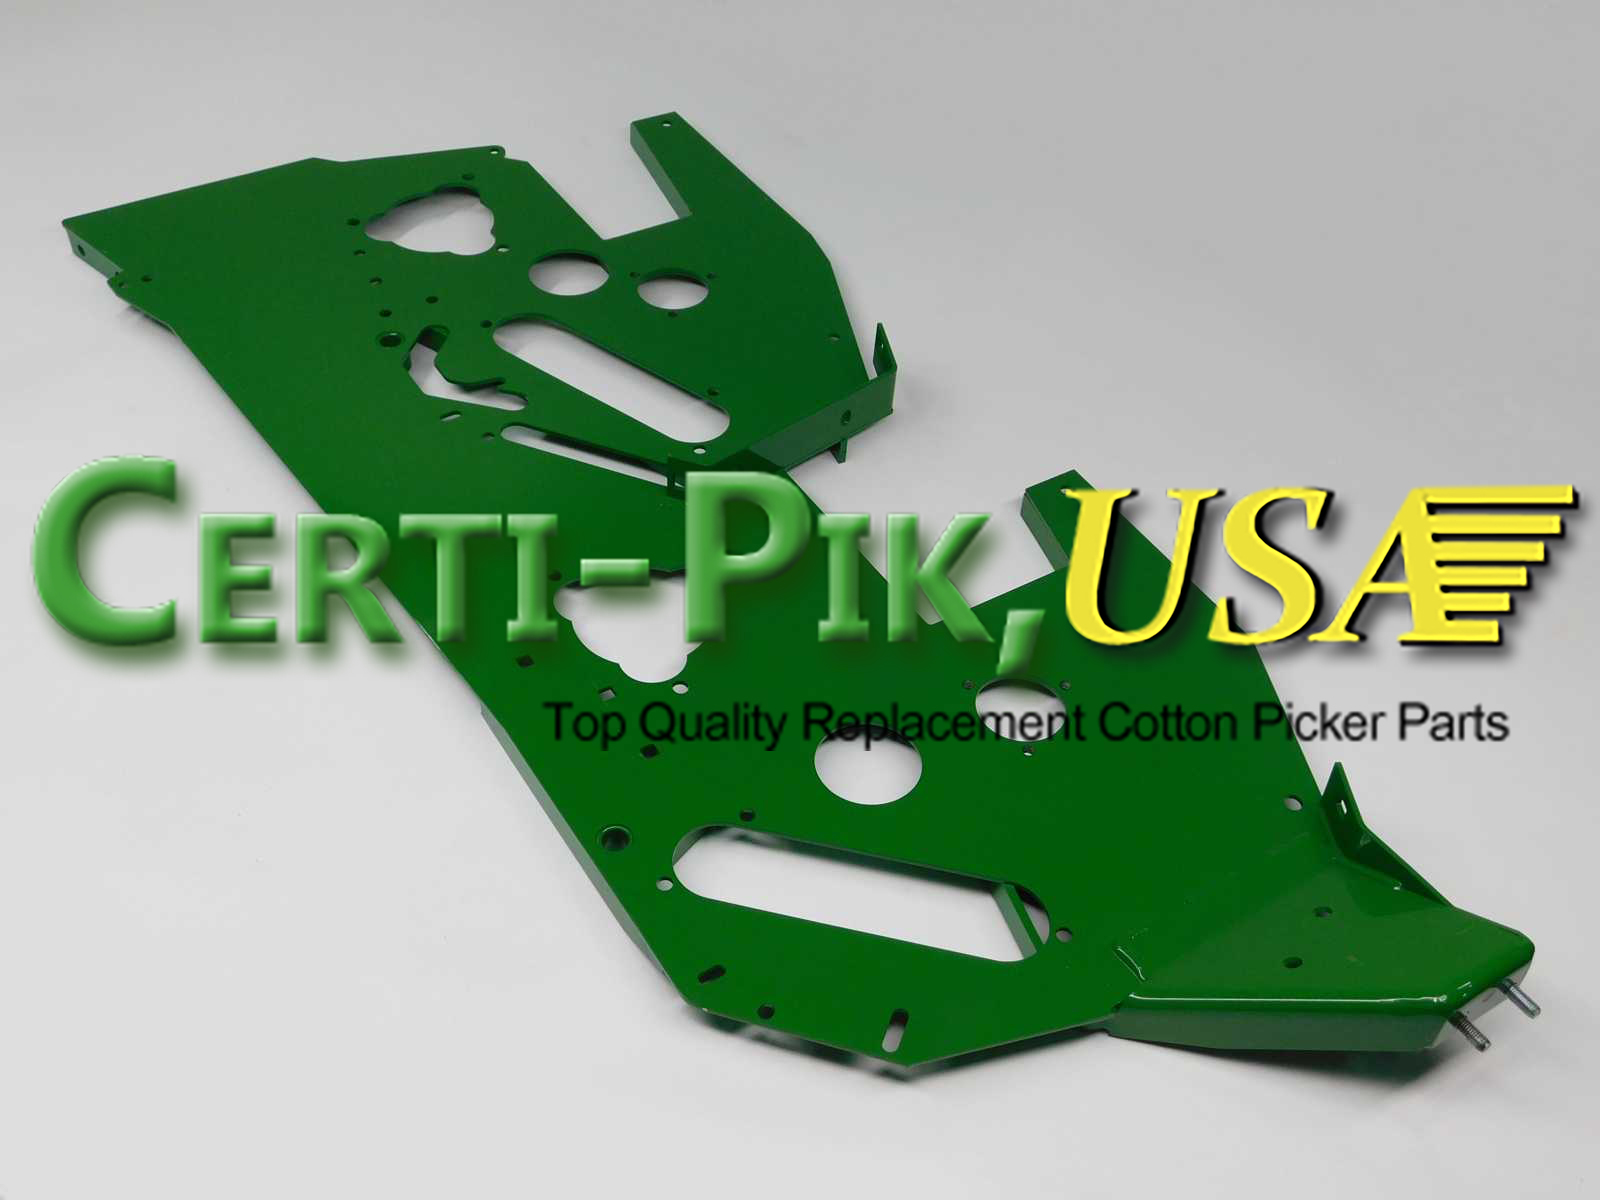 Picking Unit Cabinet: John Deere 9976-CP690 Lower Cabinet